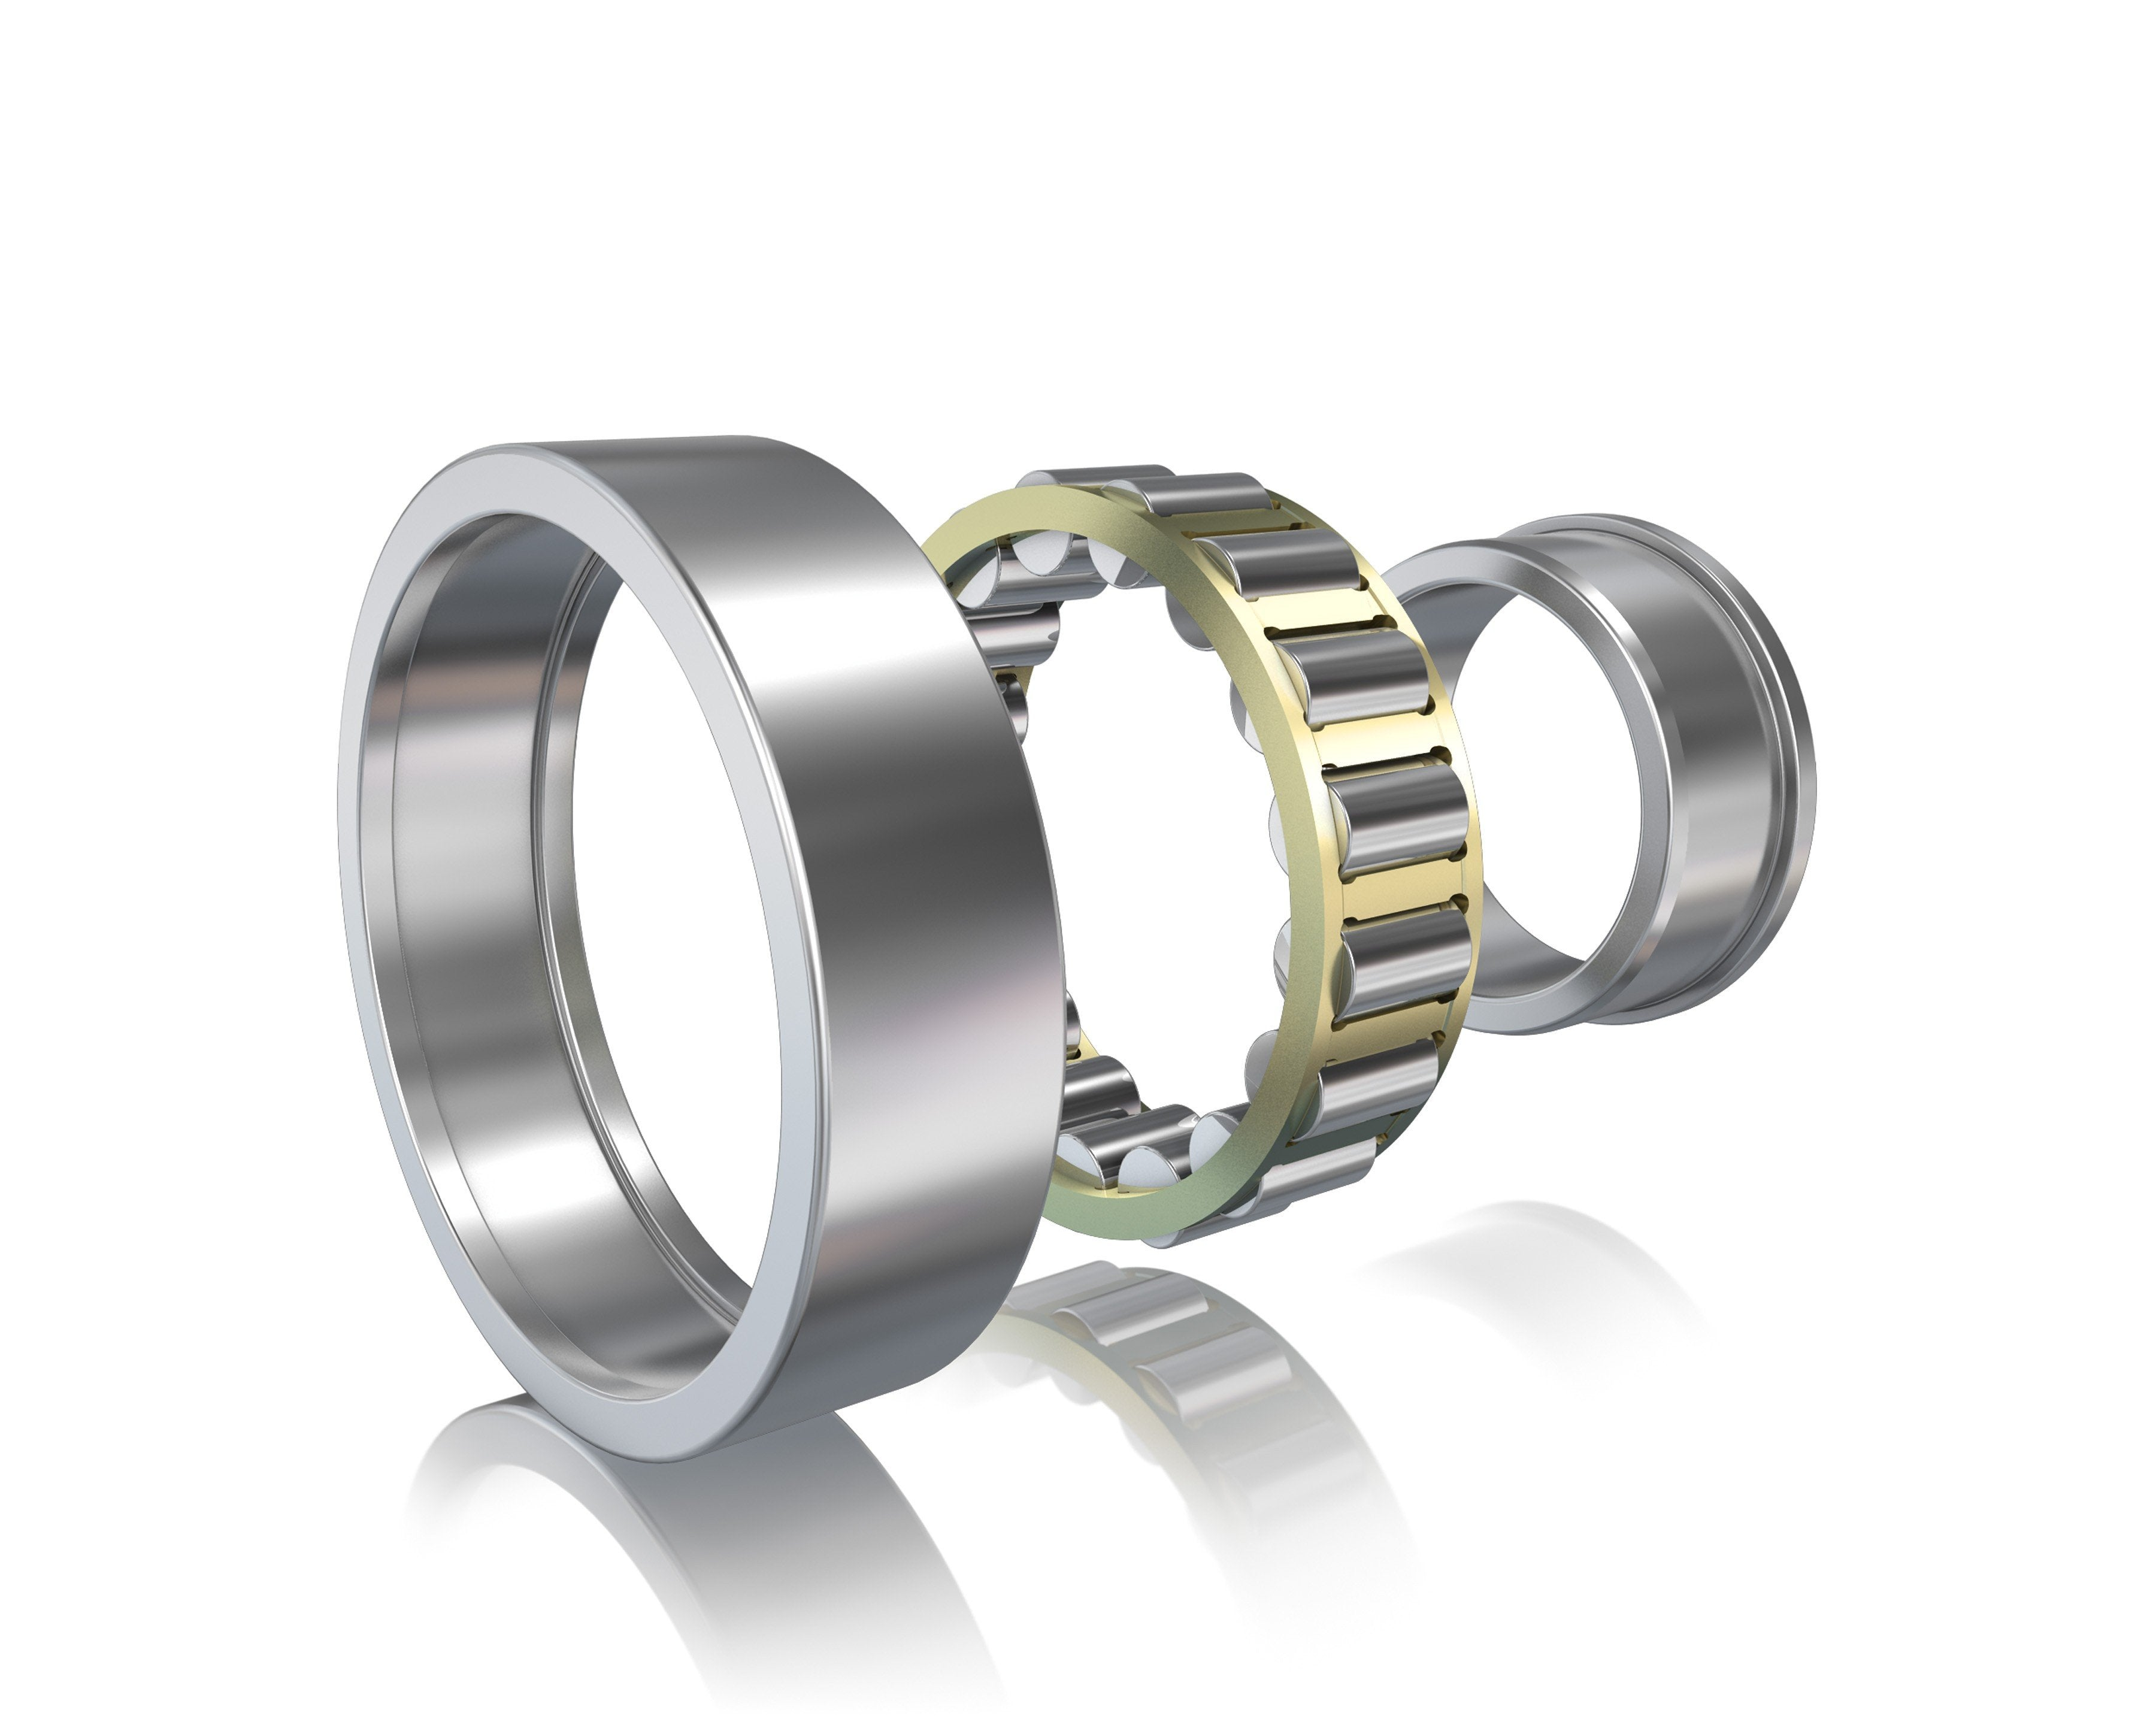 N219-ECP-SKF, Bearings, Cylindrical roller bearings